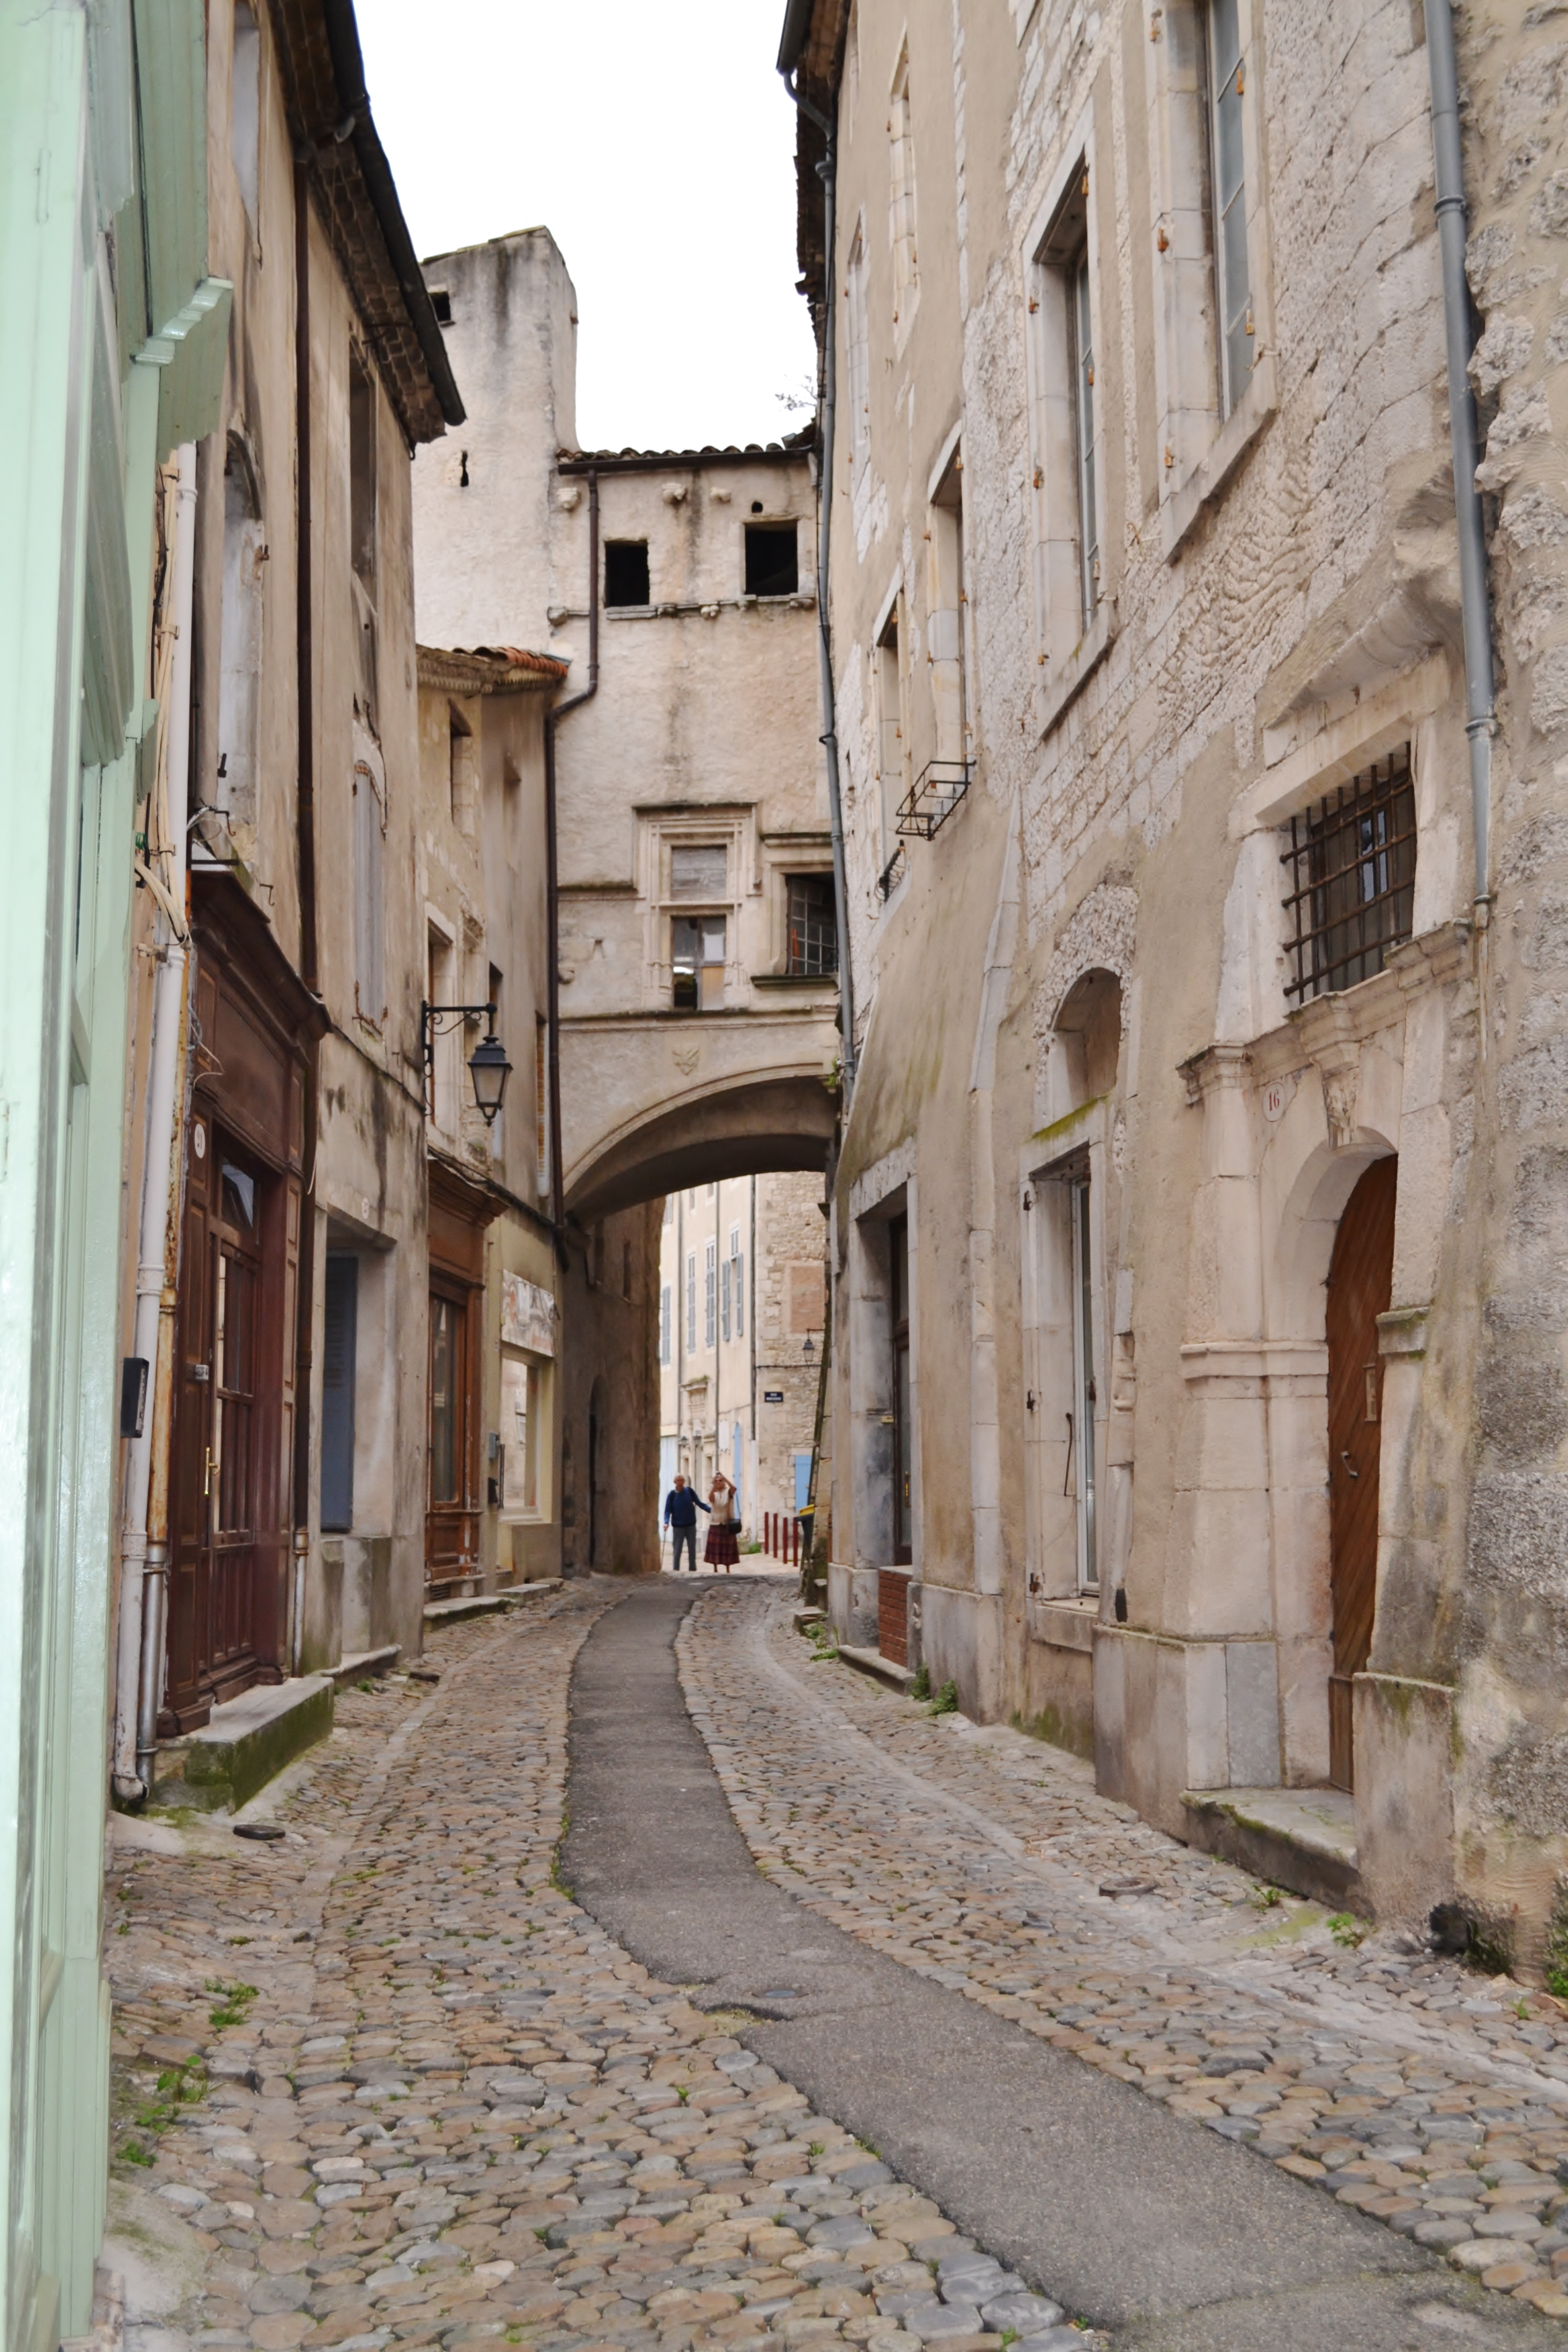 The streets of Viviers